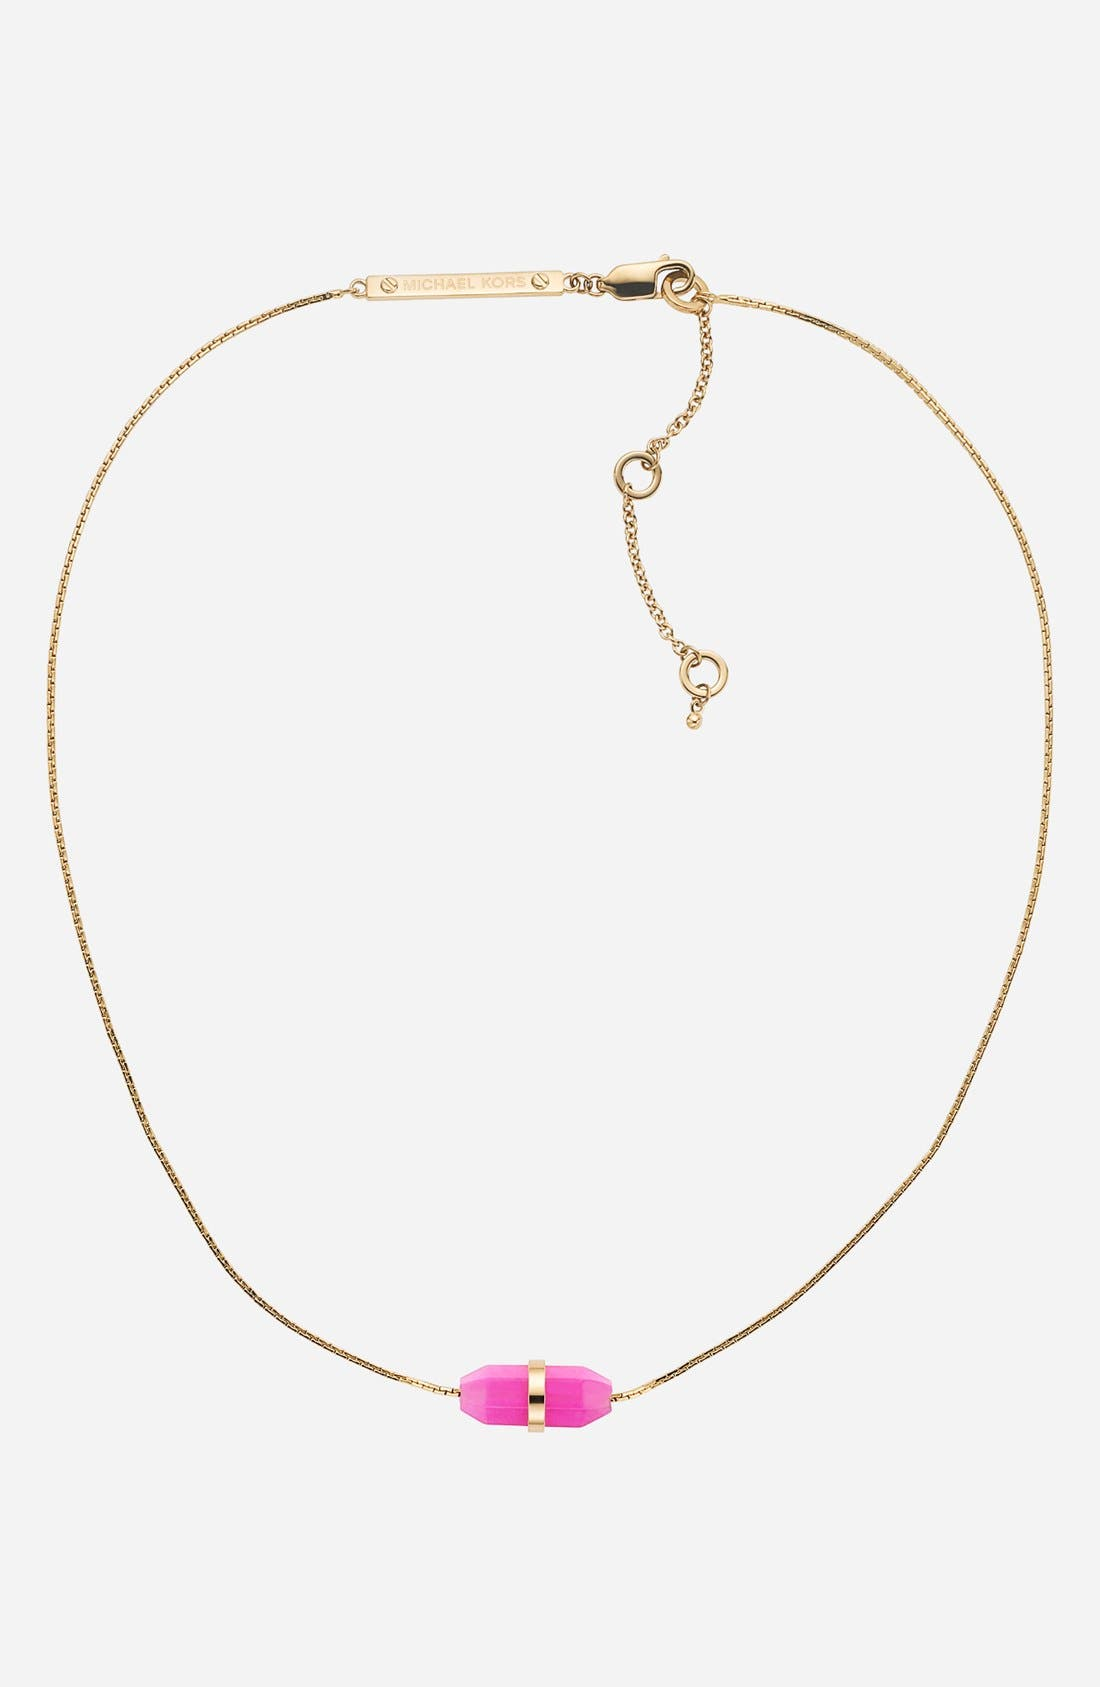 Main Image - Michael Kors 'Seaside Luxe' Stone Pendant Necklace